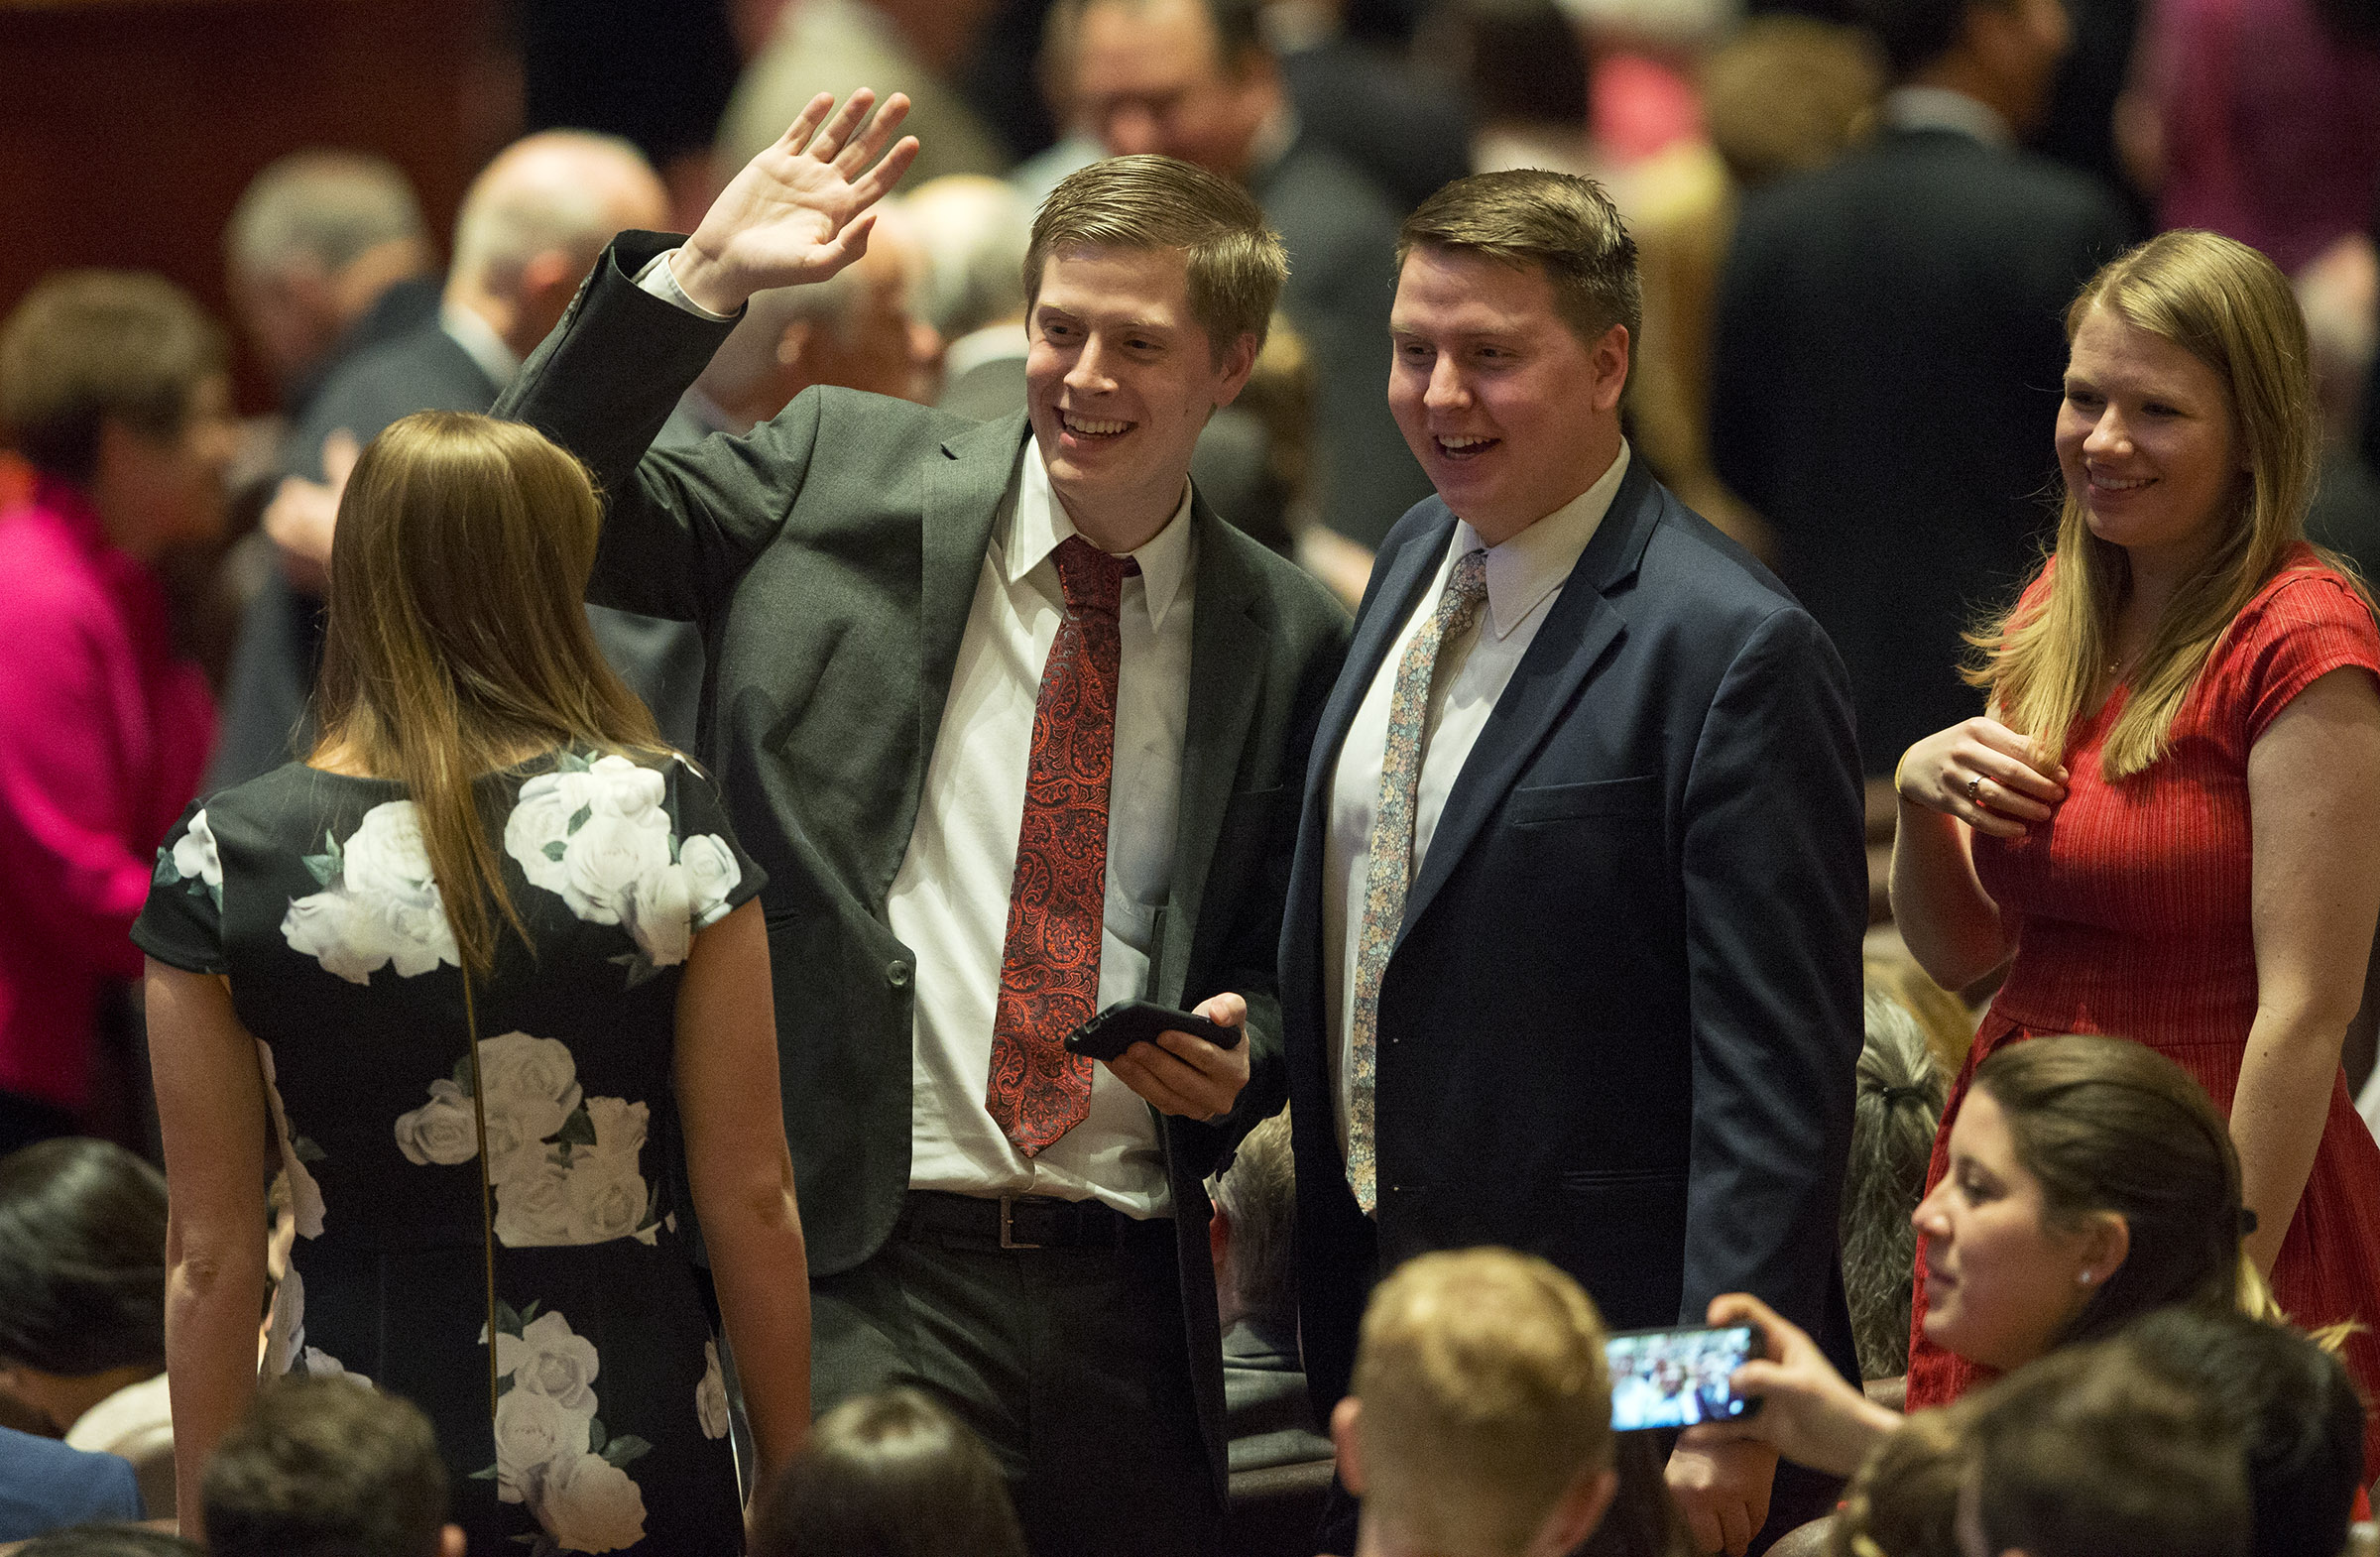 Conferencegoers wave to friends as they attend the Sunday afternoon session of the 188th Annual General Conference of The Church of Jesus Christ of Latter-day Saints, in the Conference Center in Salt Lake City on Sunday, April 1, 2018.